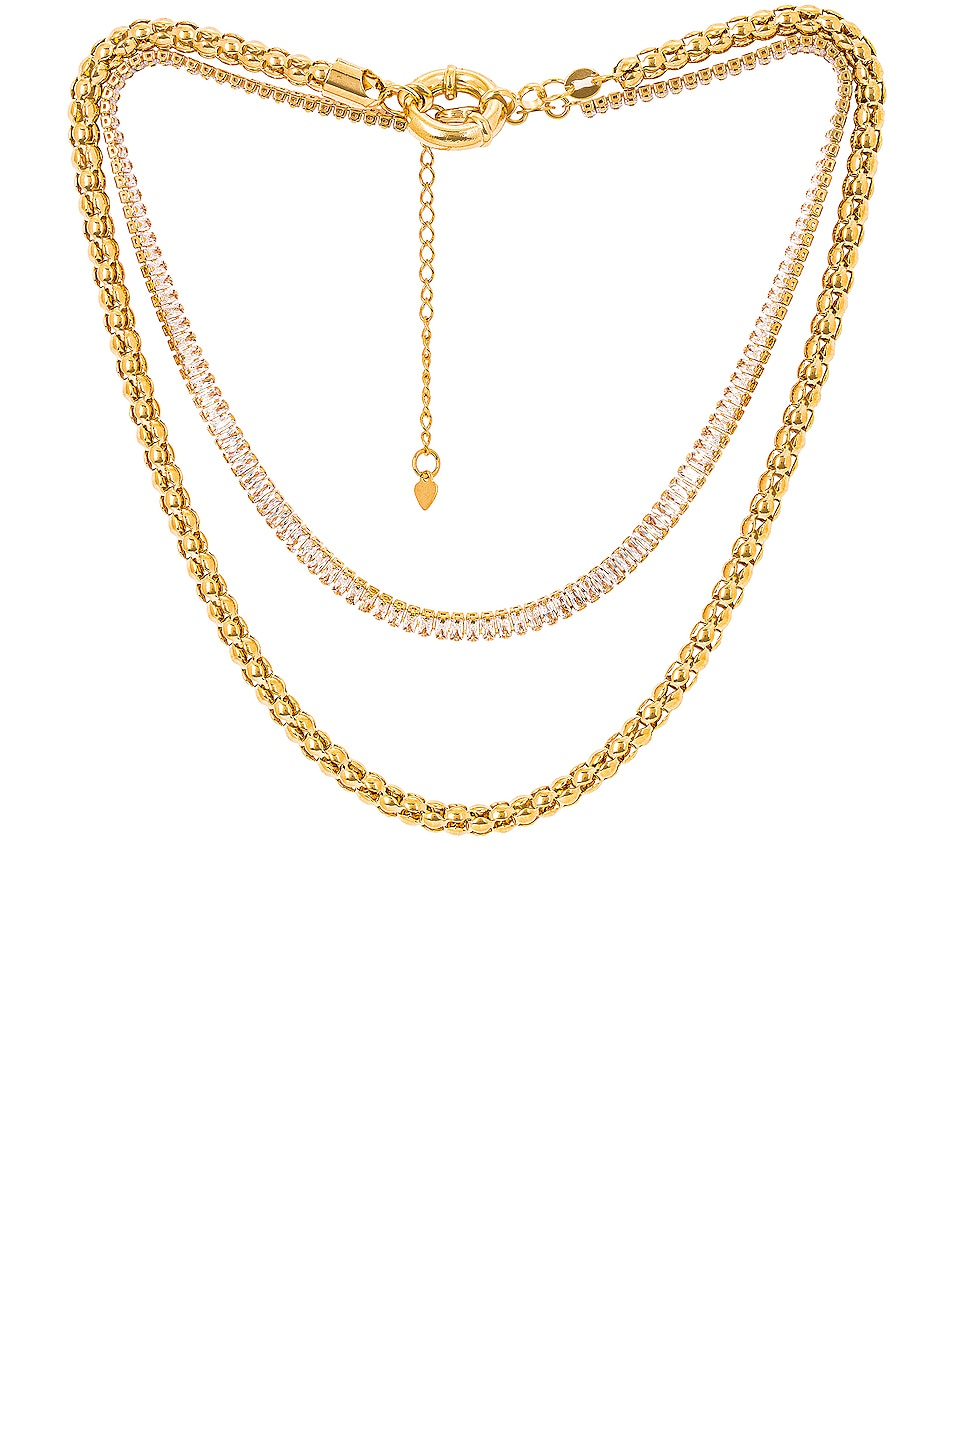 Image 1 of Jordan Road Jewelry for FWRD St. Tropez Necklace Stack in Gold & Crystal